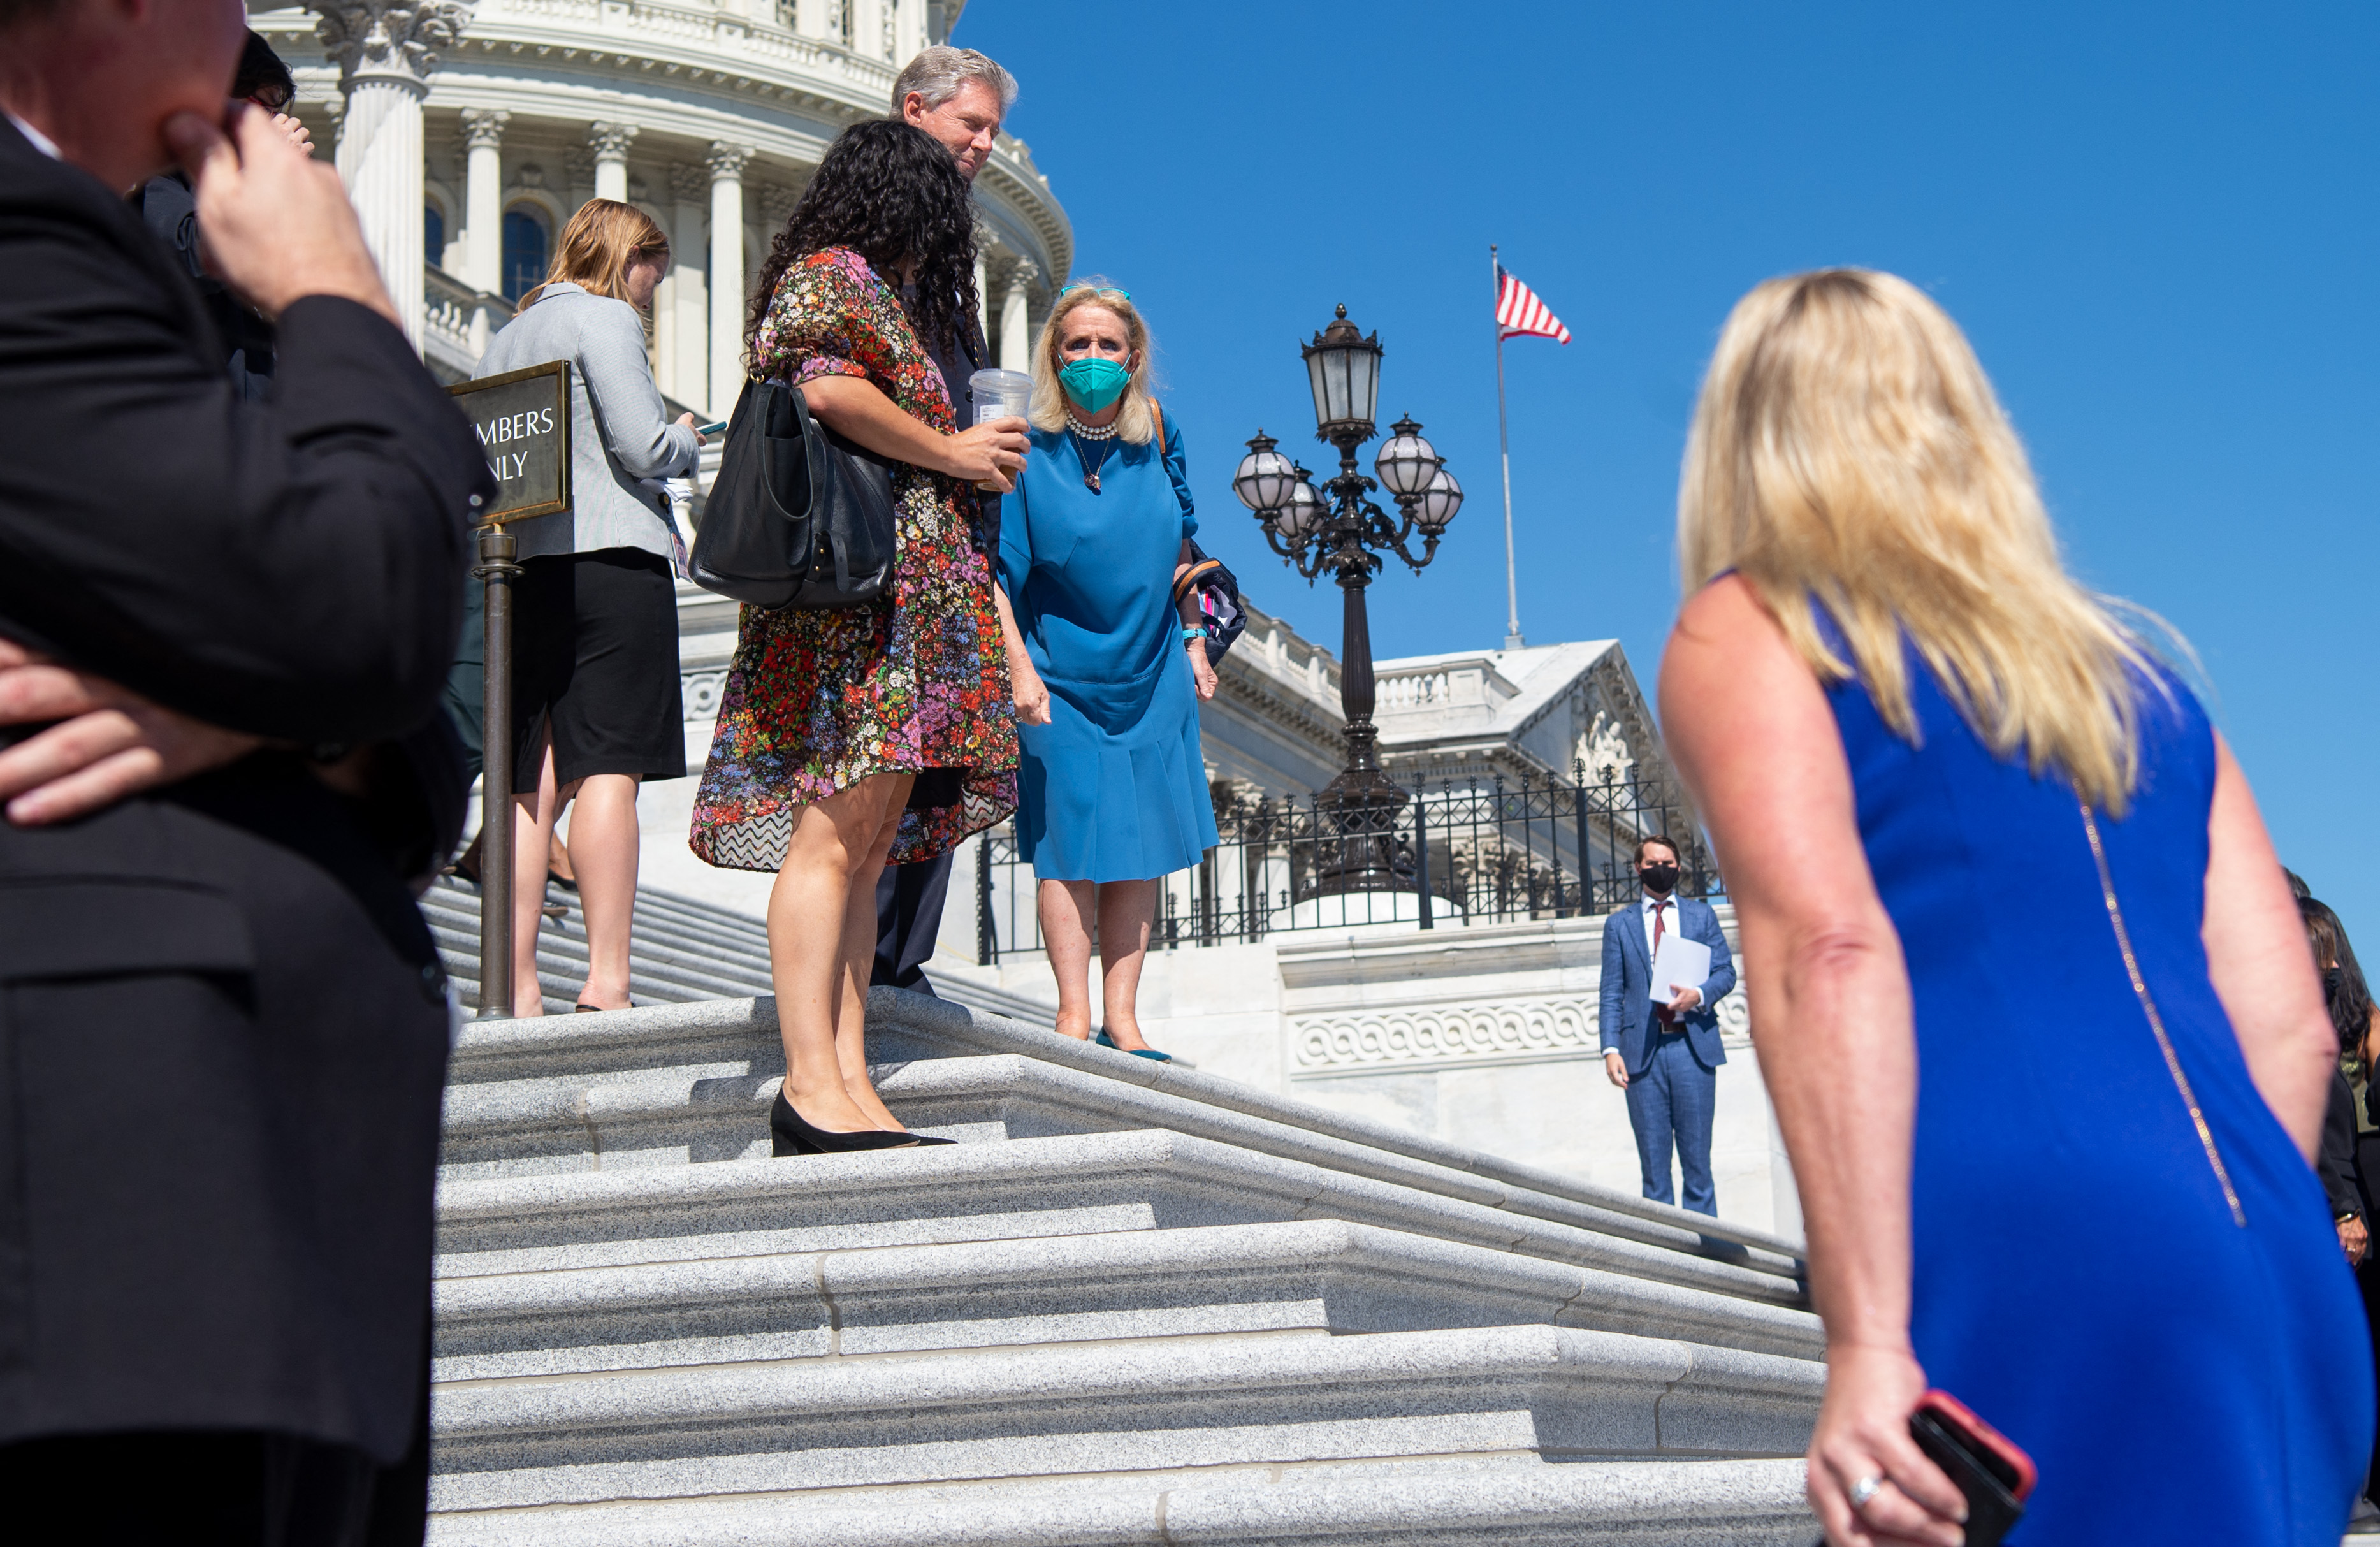 Rep. Debbie Dingell (center), Democrat of Michigan, shouts at Rep. Marjorie Taylor Greene (right), on the steps of the U.S. Capitol in Washington, D.C., September 24, 2021. (Photo by SAUL LOEB/AFP via Getty Images)